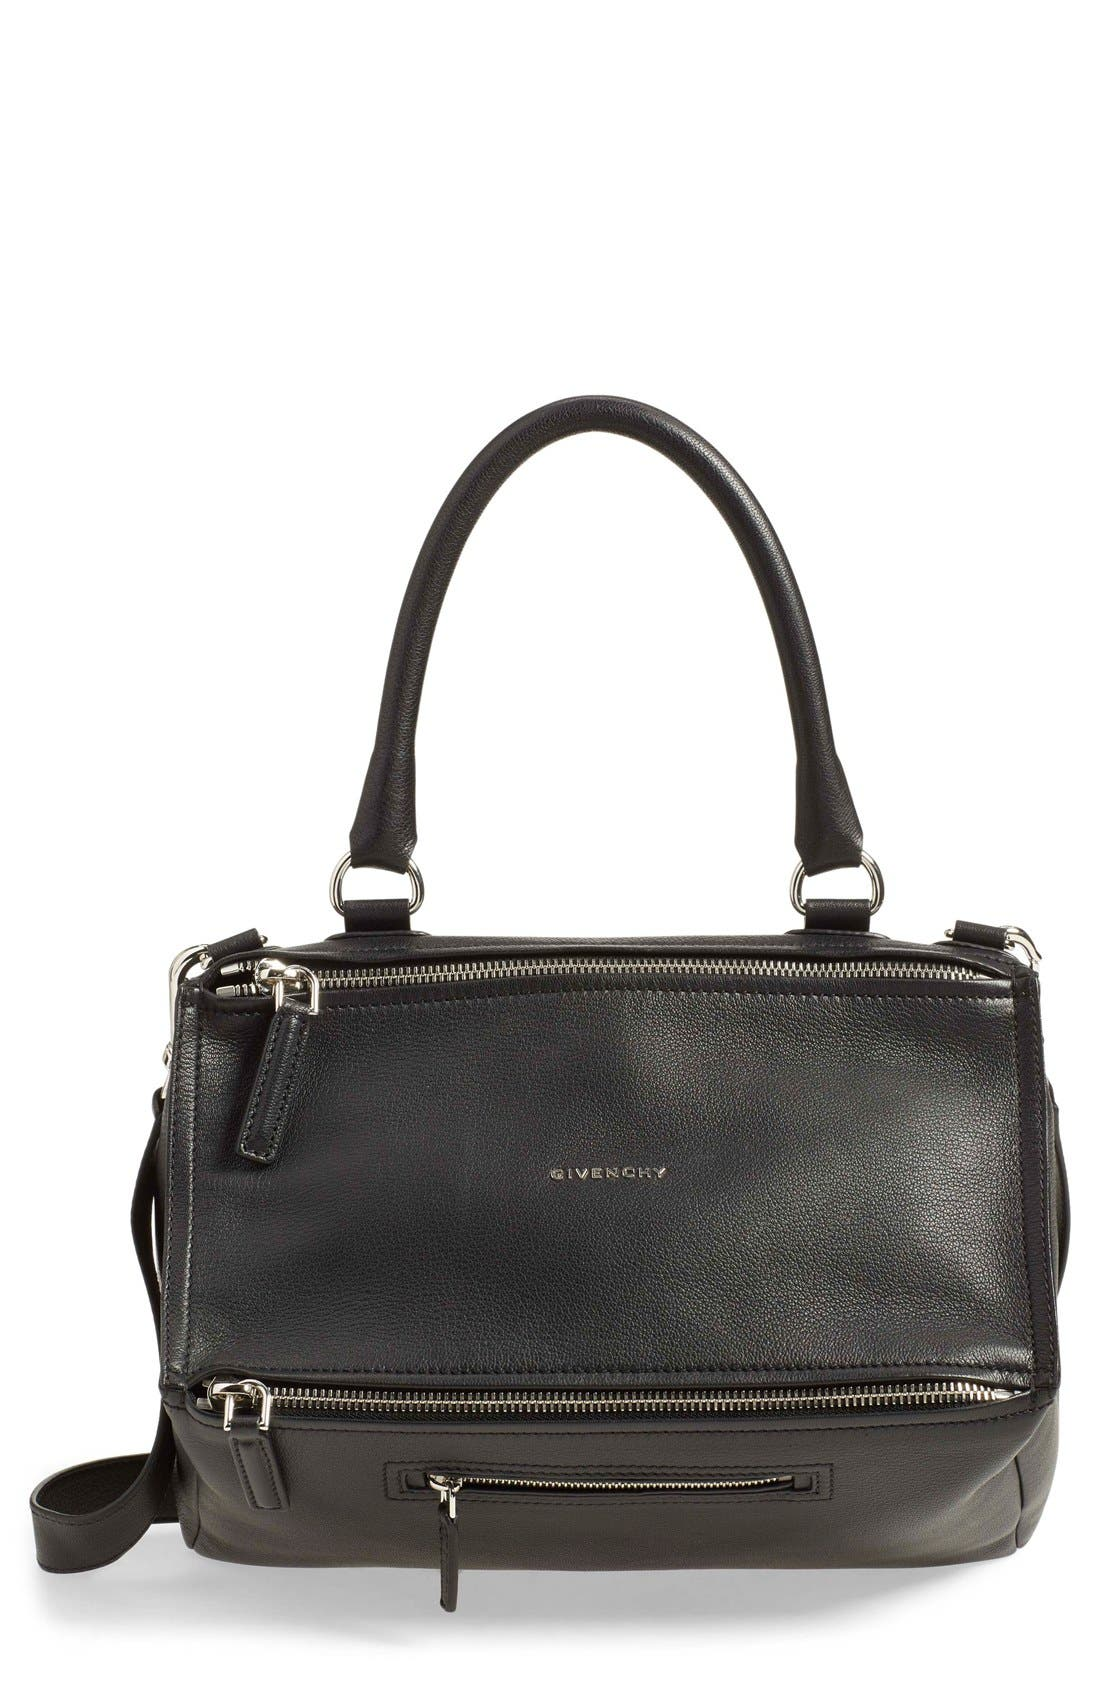 'Medium Pandora' Sugar Leather Satchel,                             Main thumbnail 1, color,                             BLACK